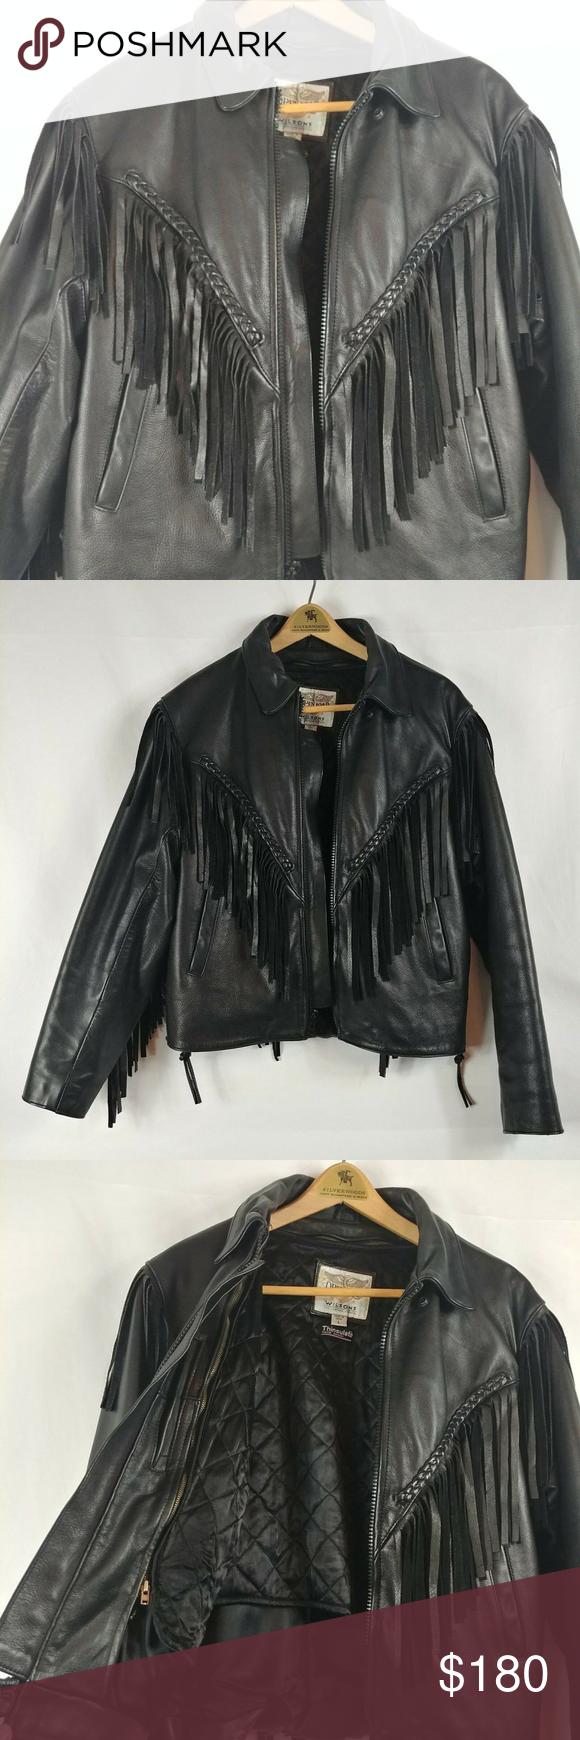 Open Road Leather Jacket - Right Jackets